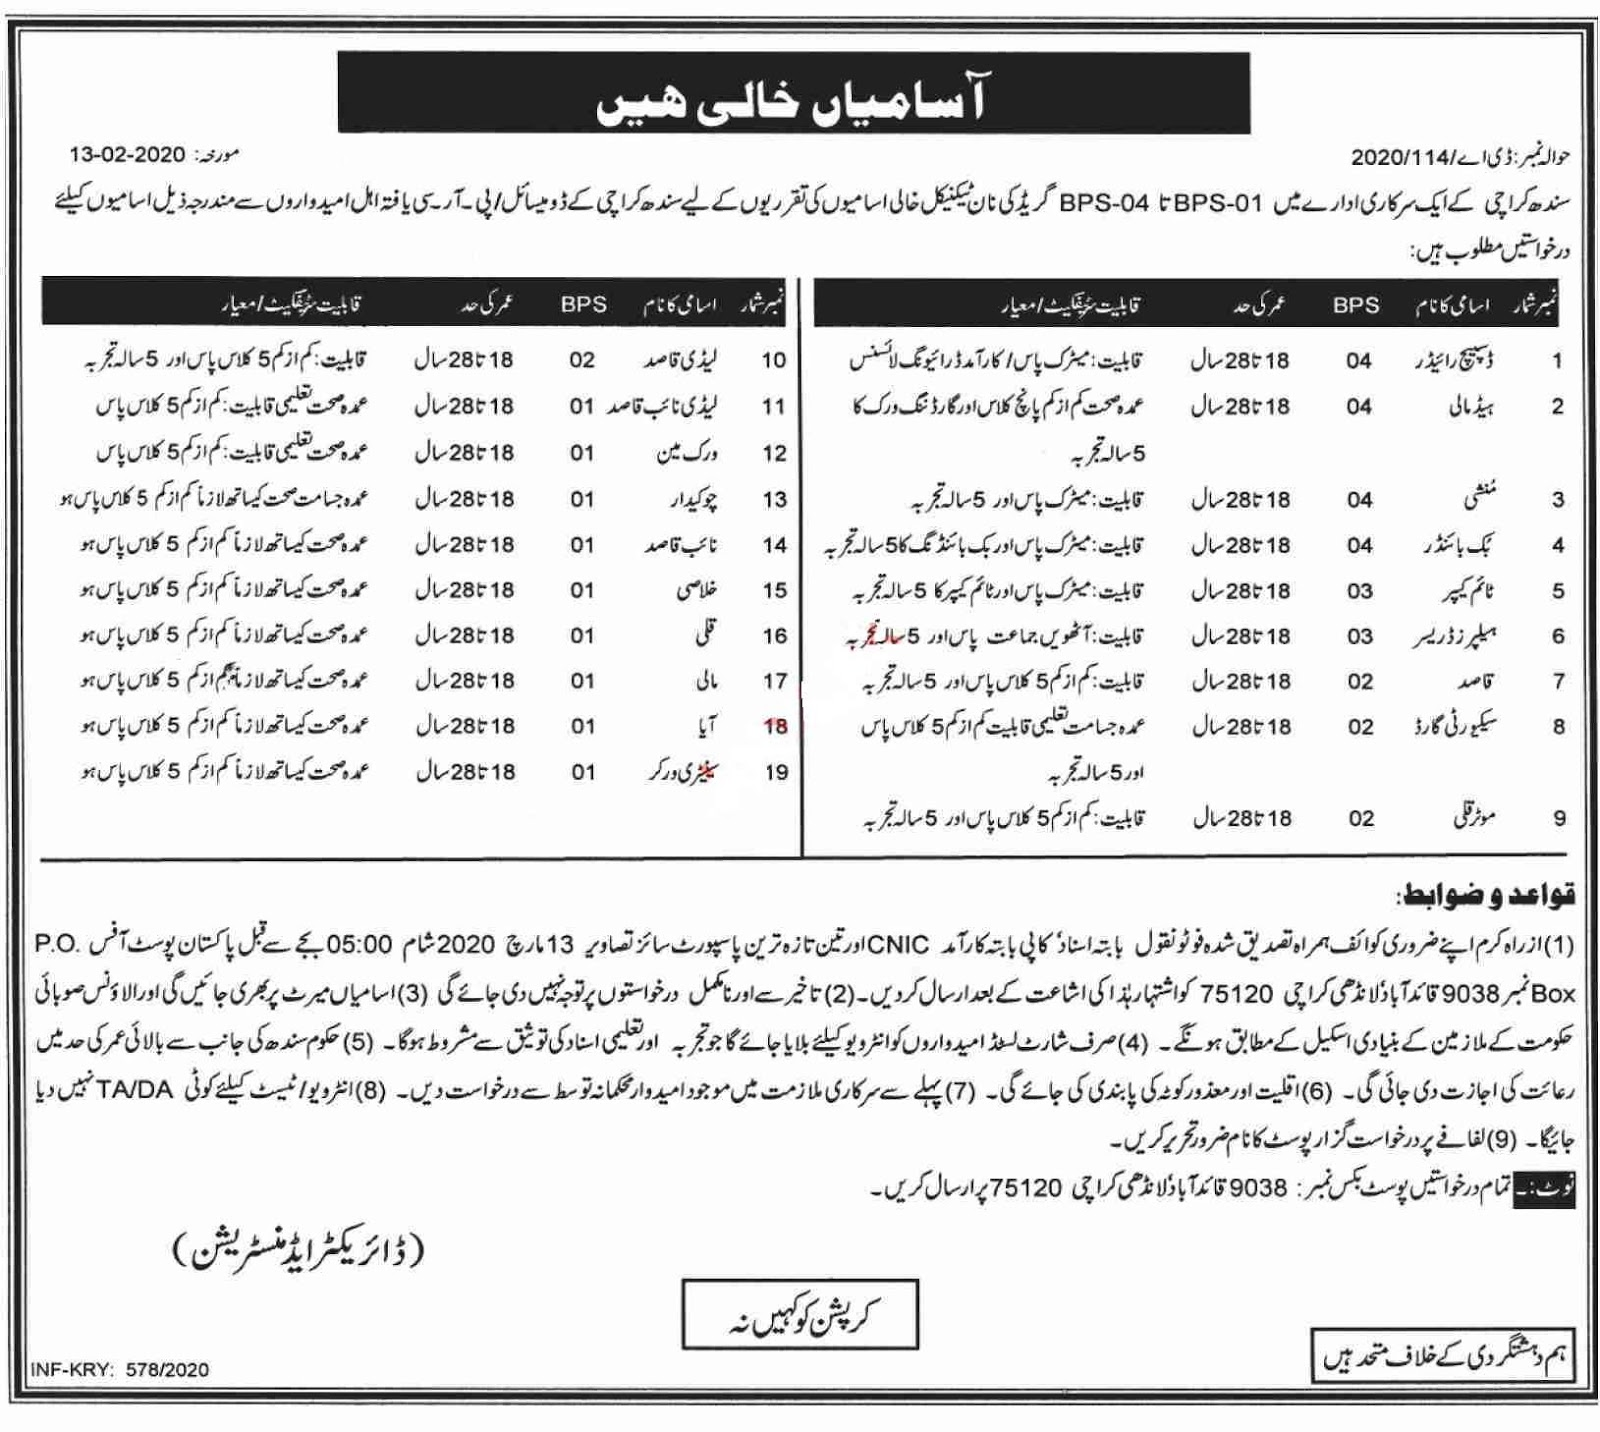 Public Sector Organization Karachi Jobs 2020 BPS 1 to BPS 4